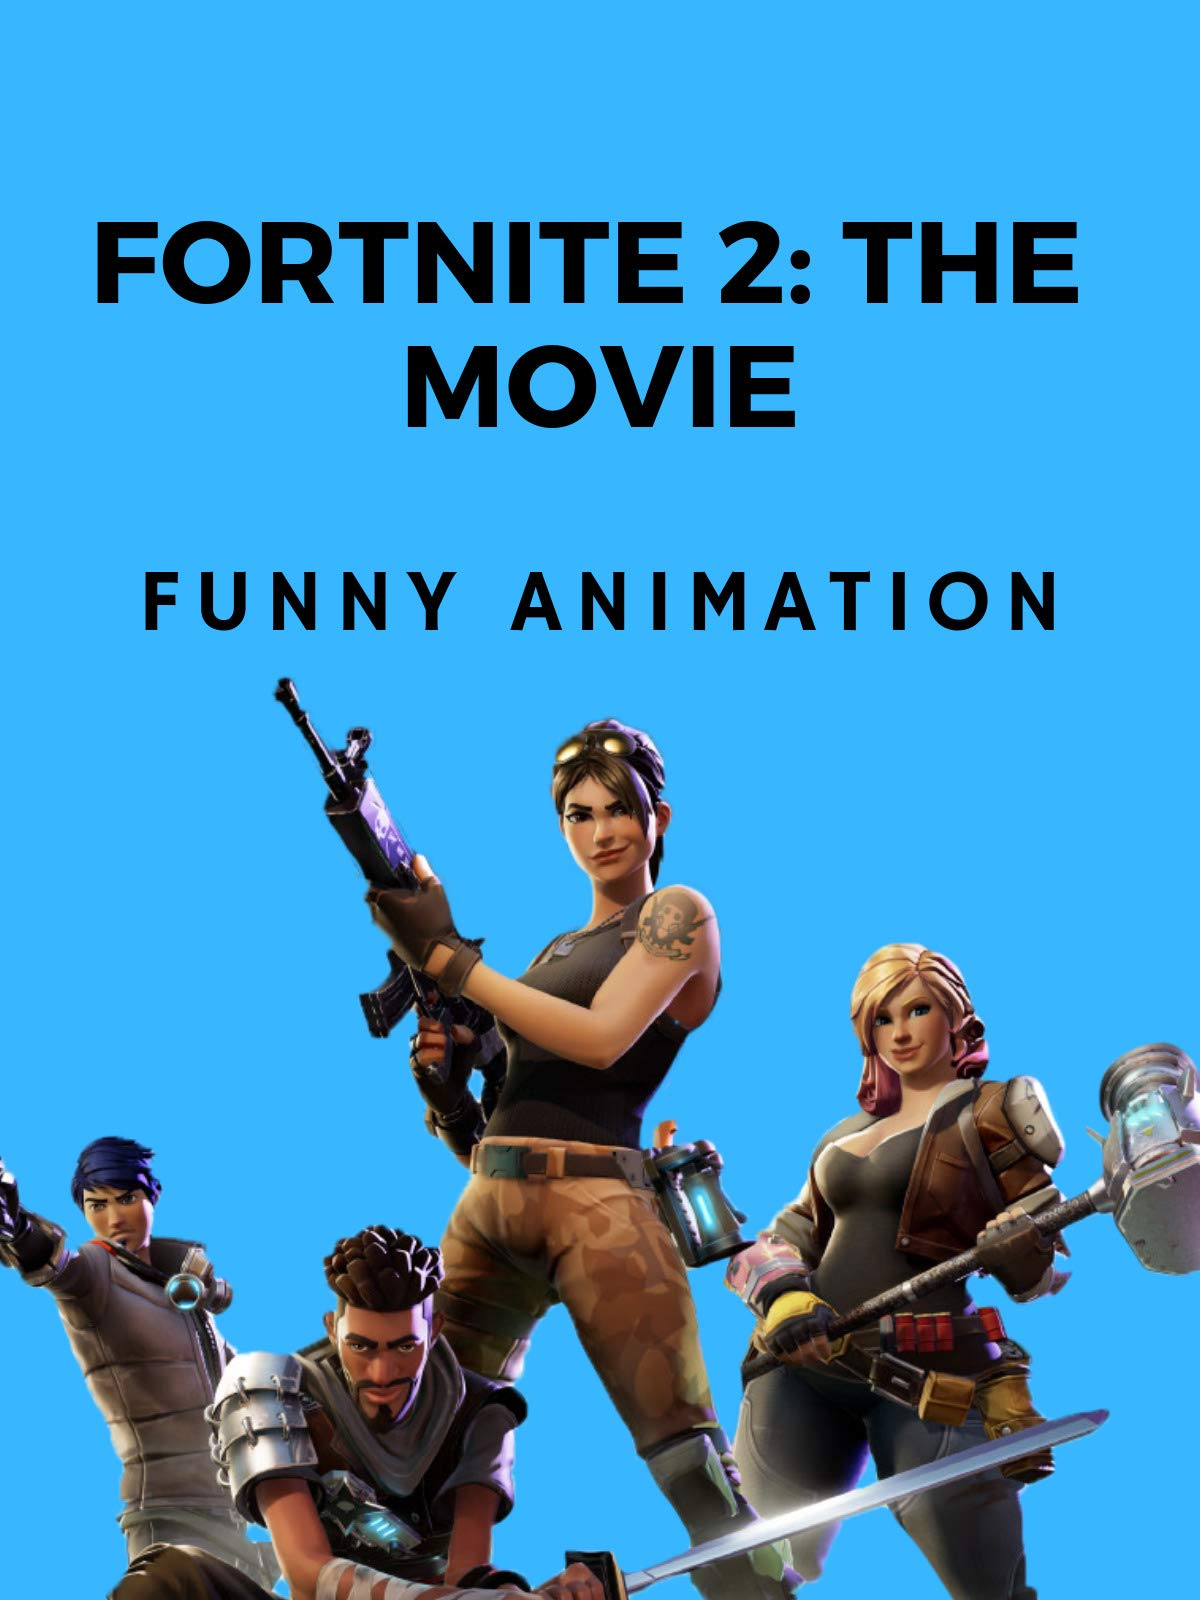 Fortnite: The Movie 2 (Funny Animation) on Amazon Prime Video UK